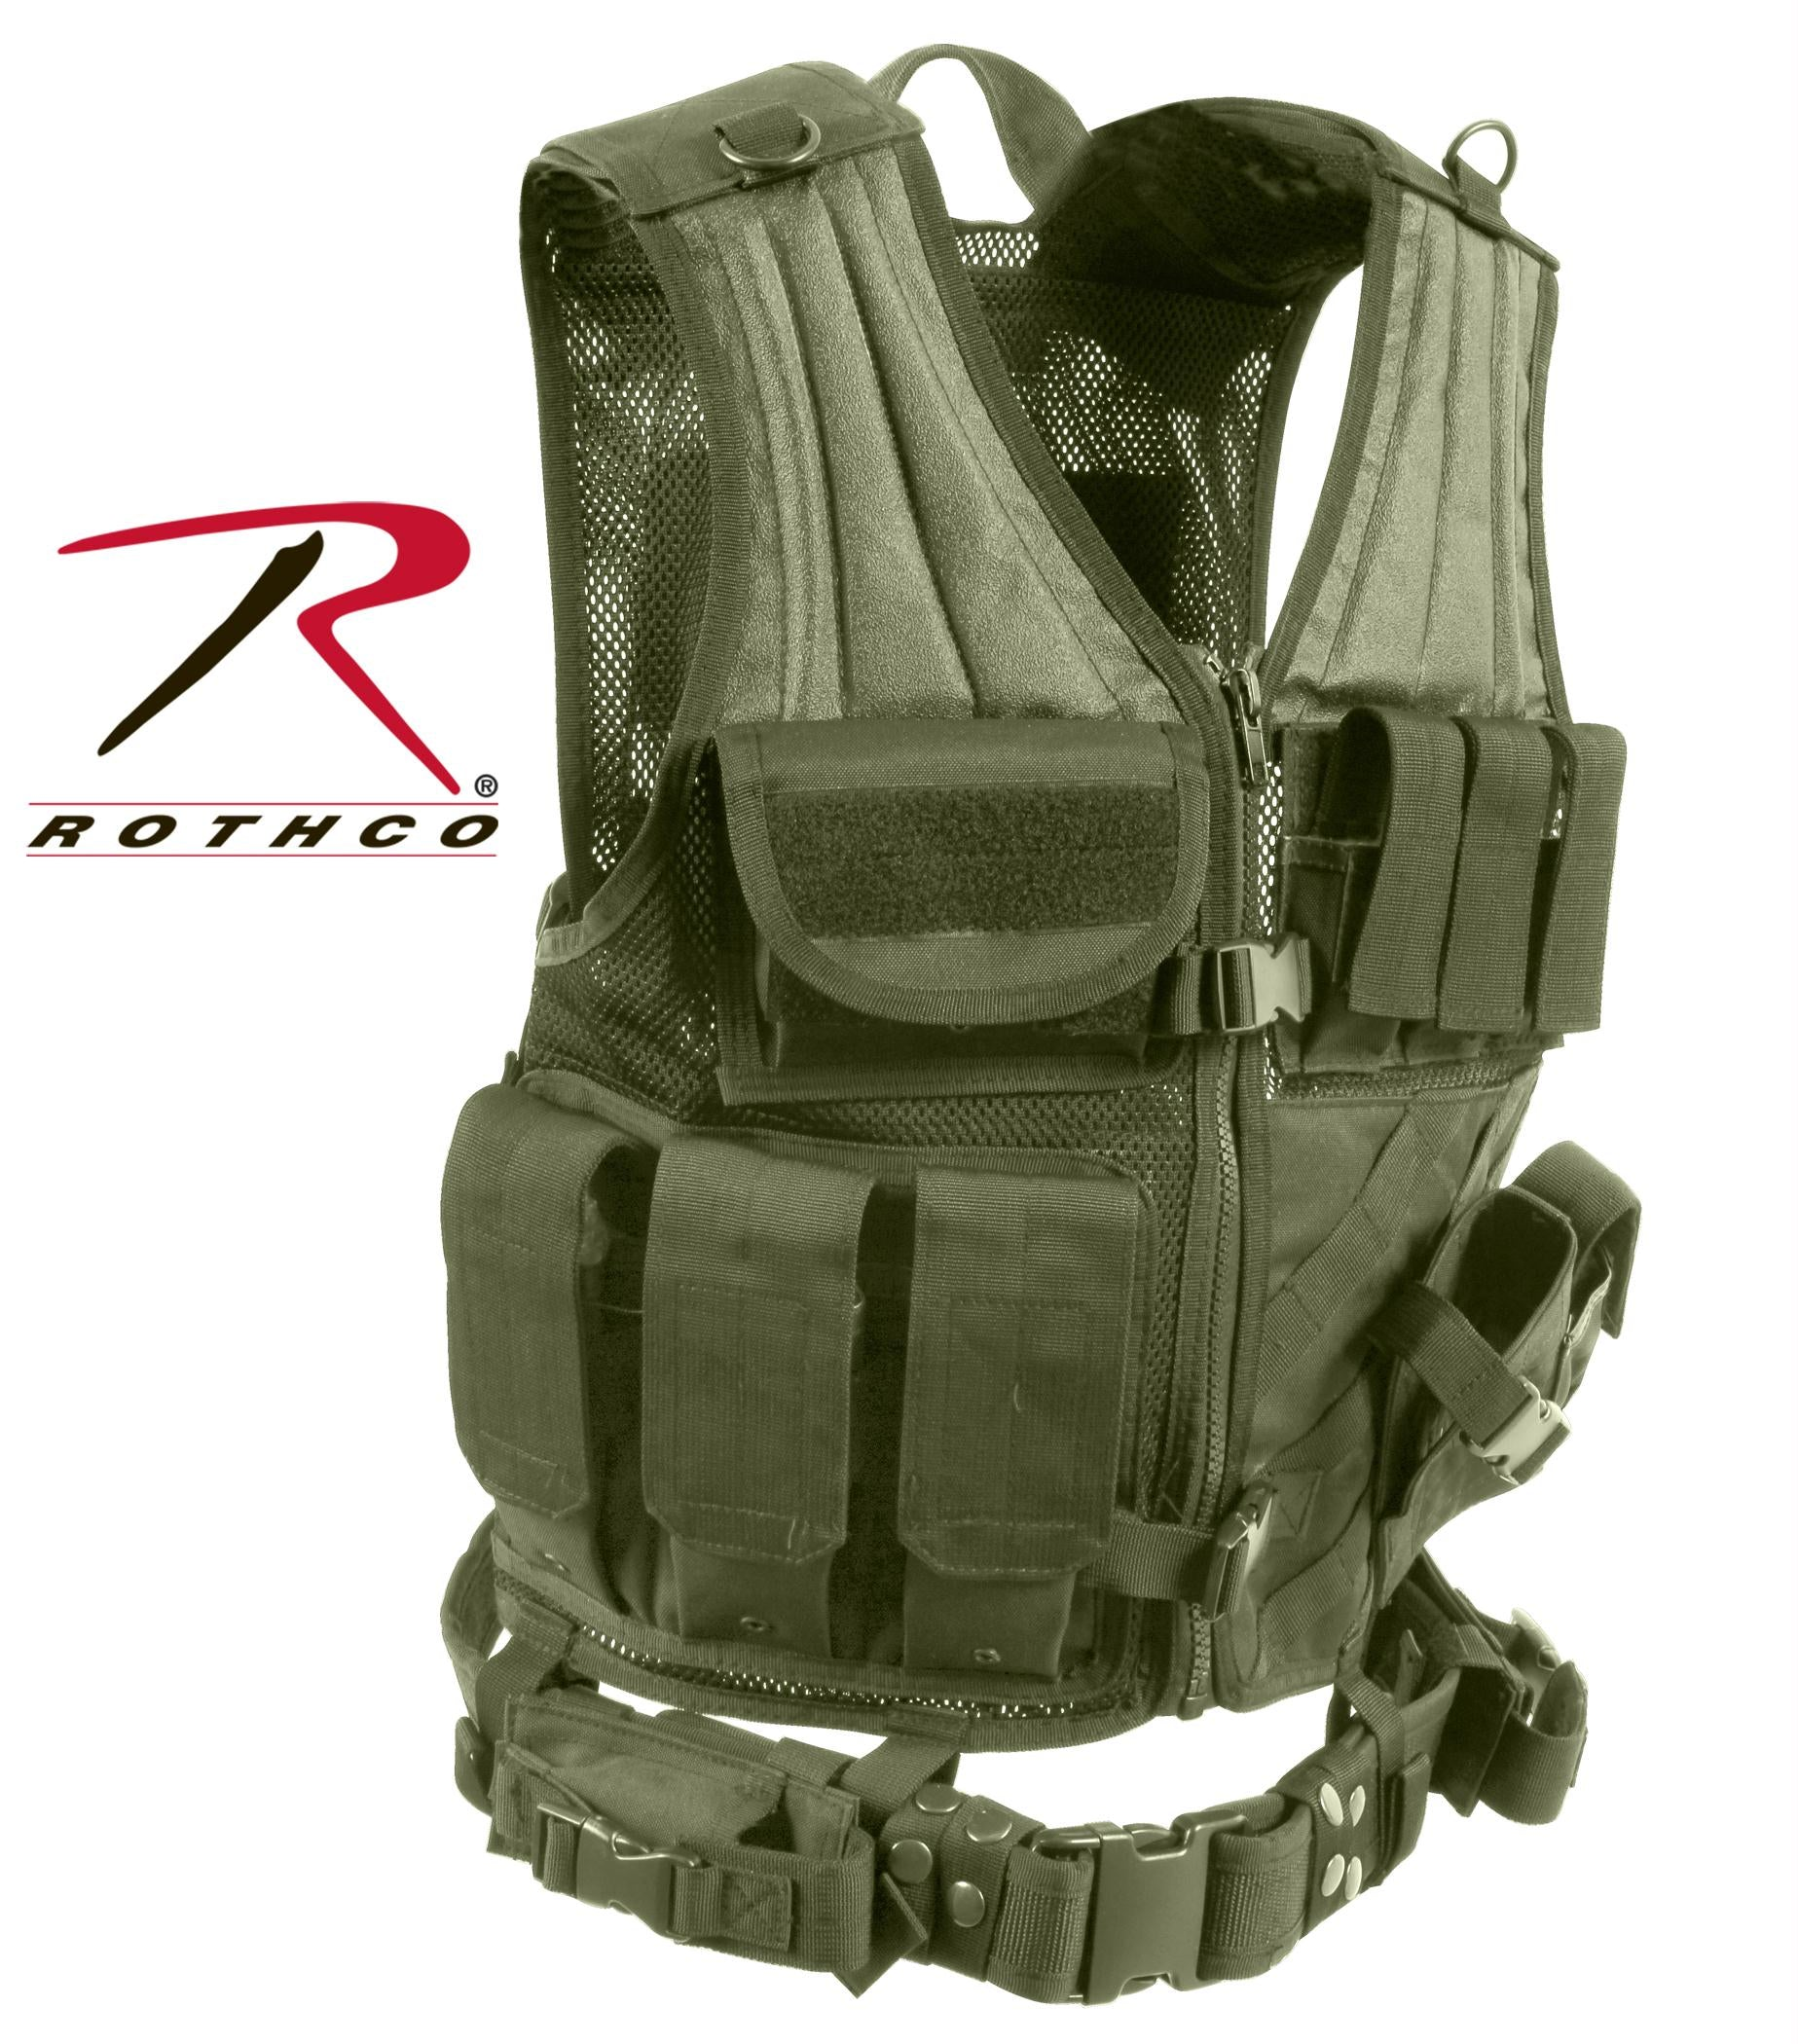 Rothco Cross Draw MOLLE Tactical Vest - Olive Drab / Regular